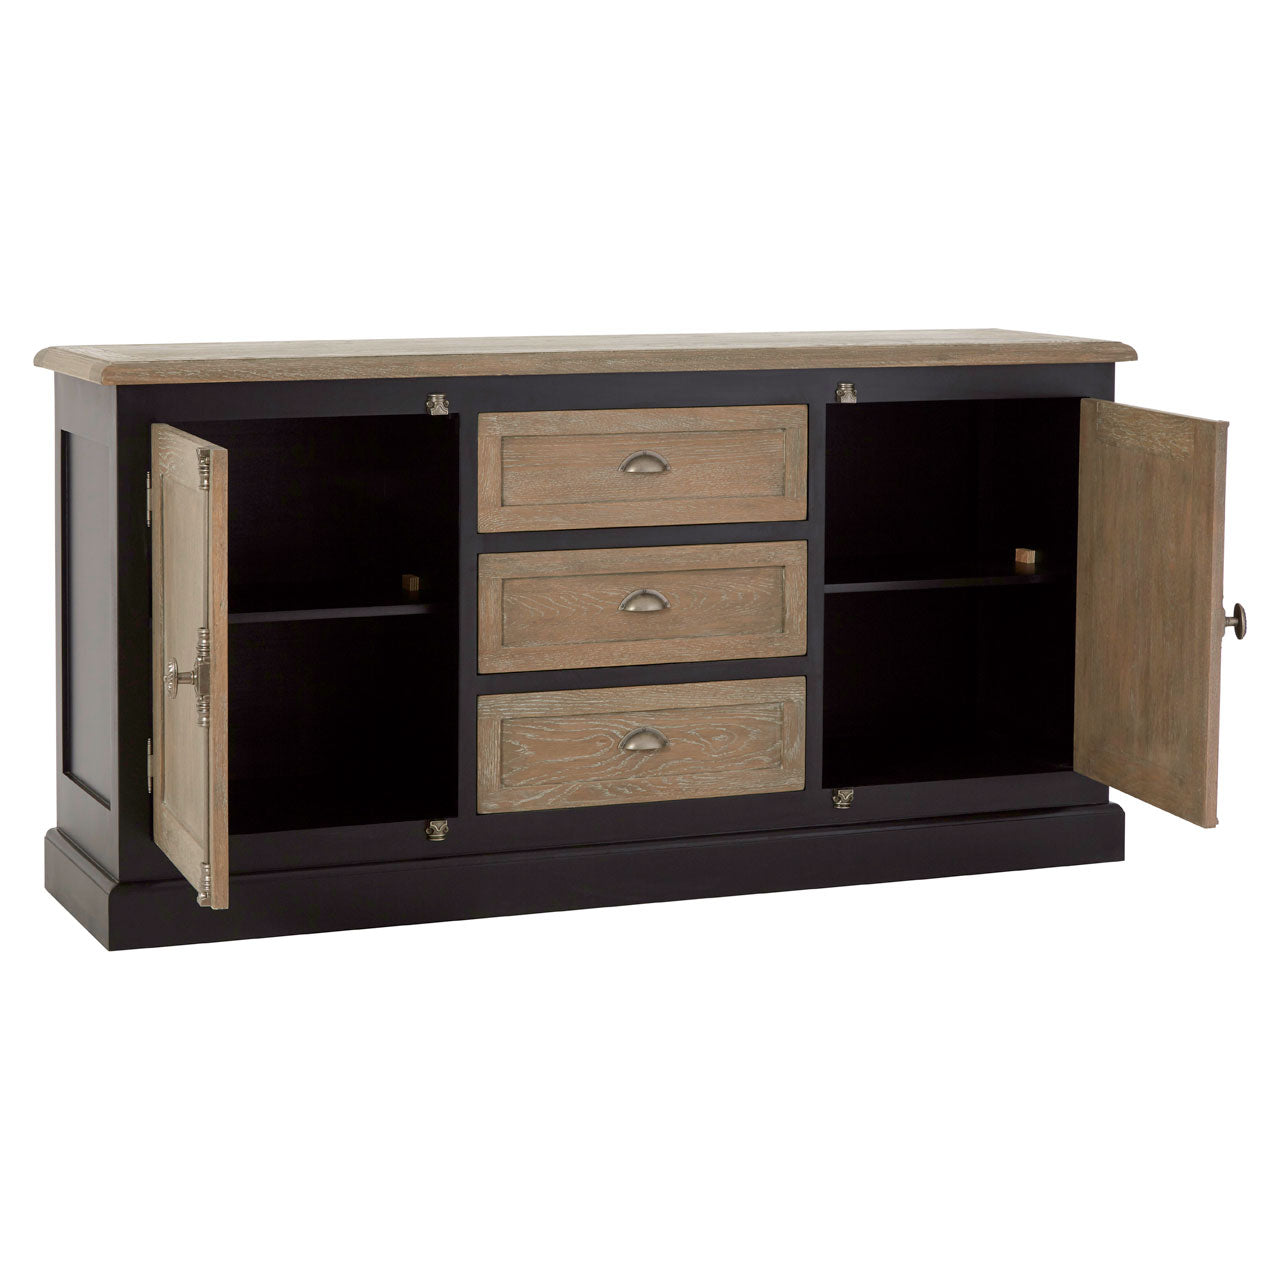 Kensington Townhouse Sideboard